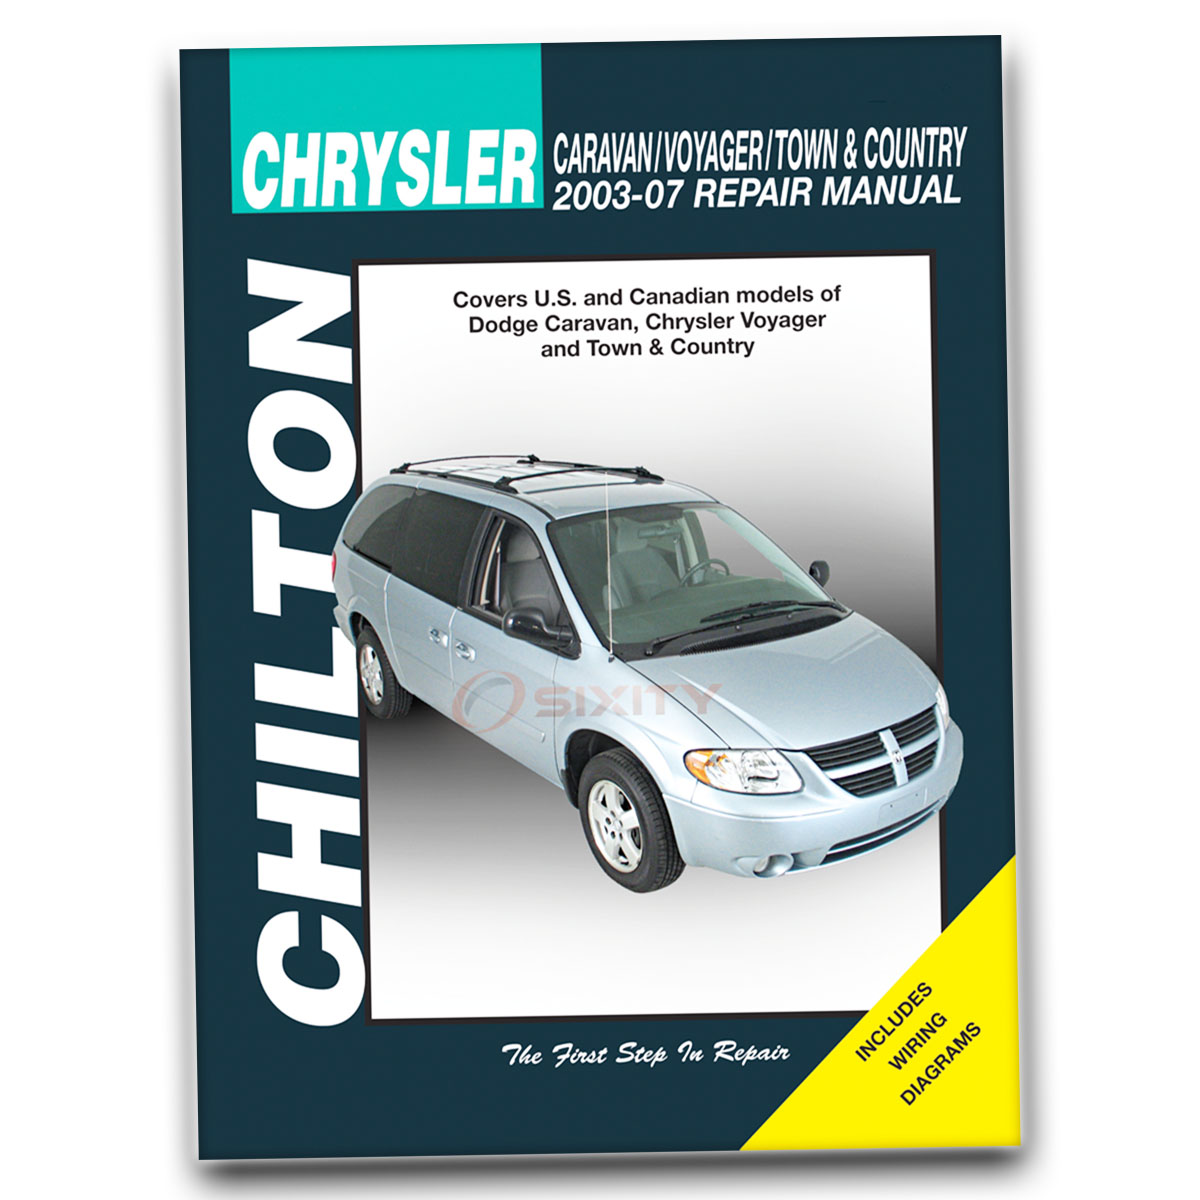 Chilton Repair Manual 20303 for Dodge Caravan Voyager Town Country 2003-07  ad